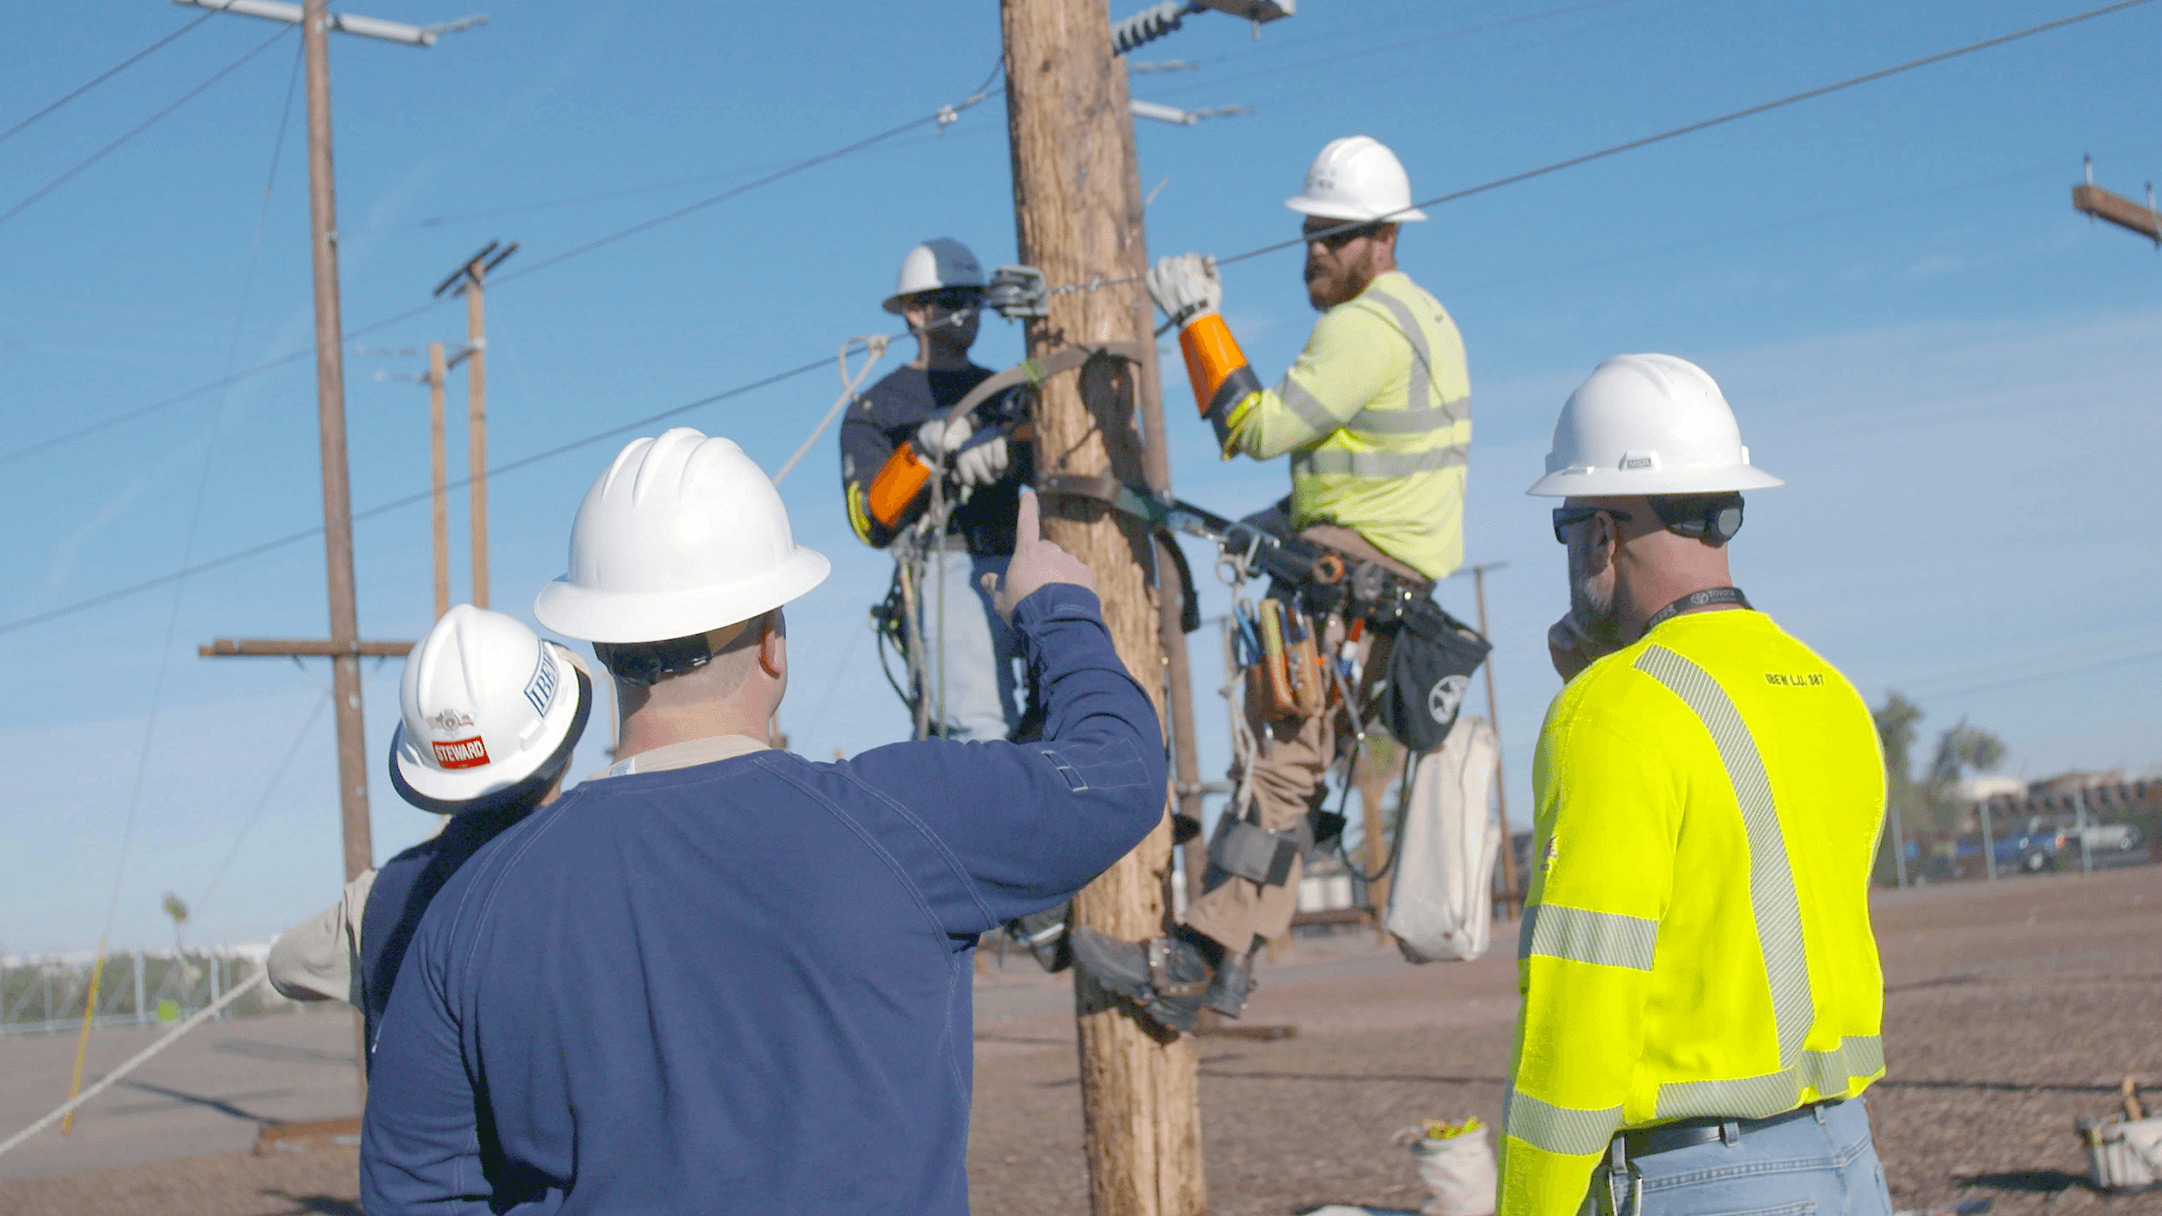 Men working on a power line.